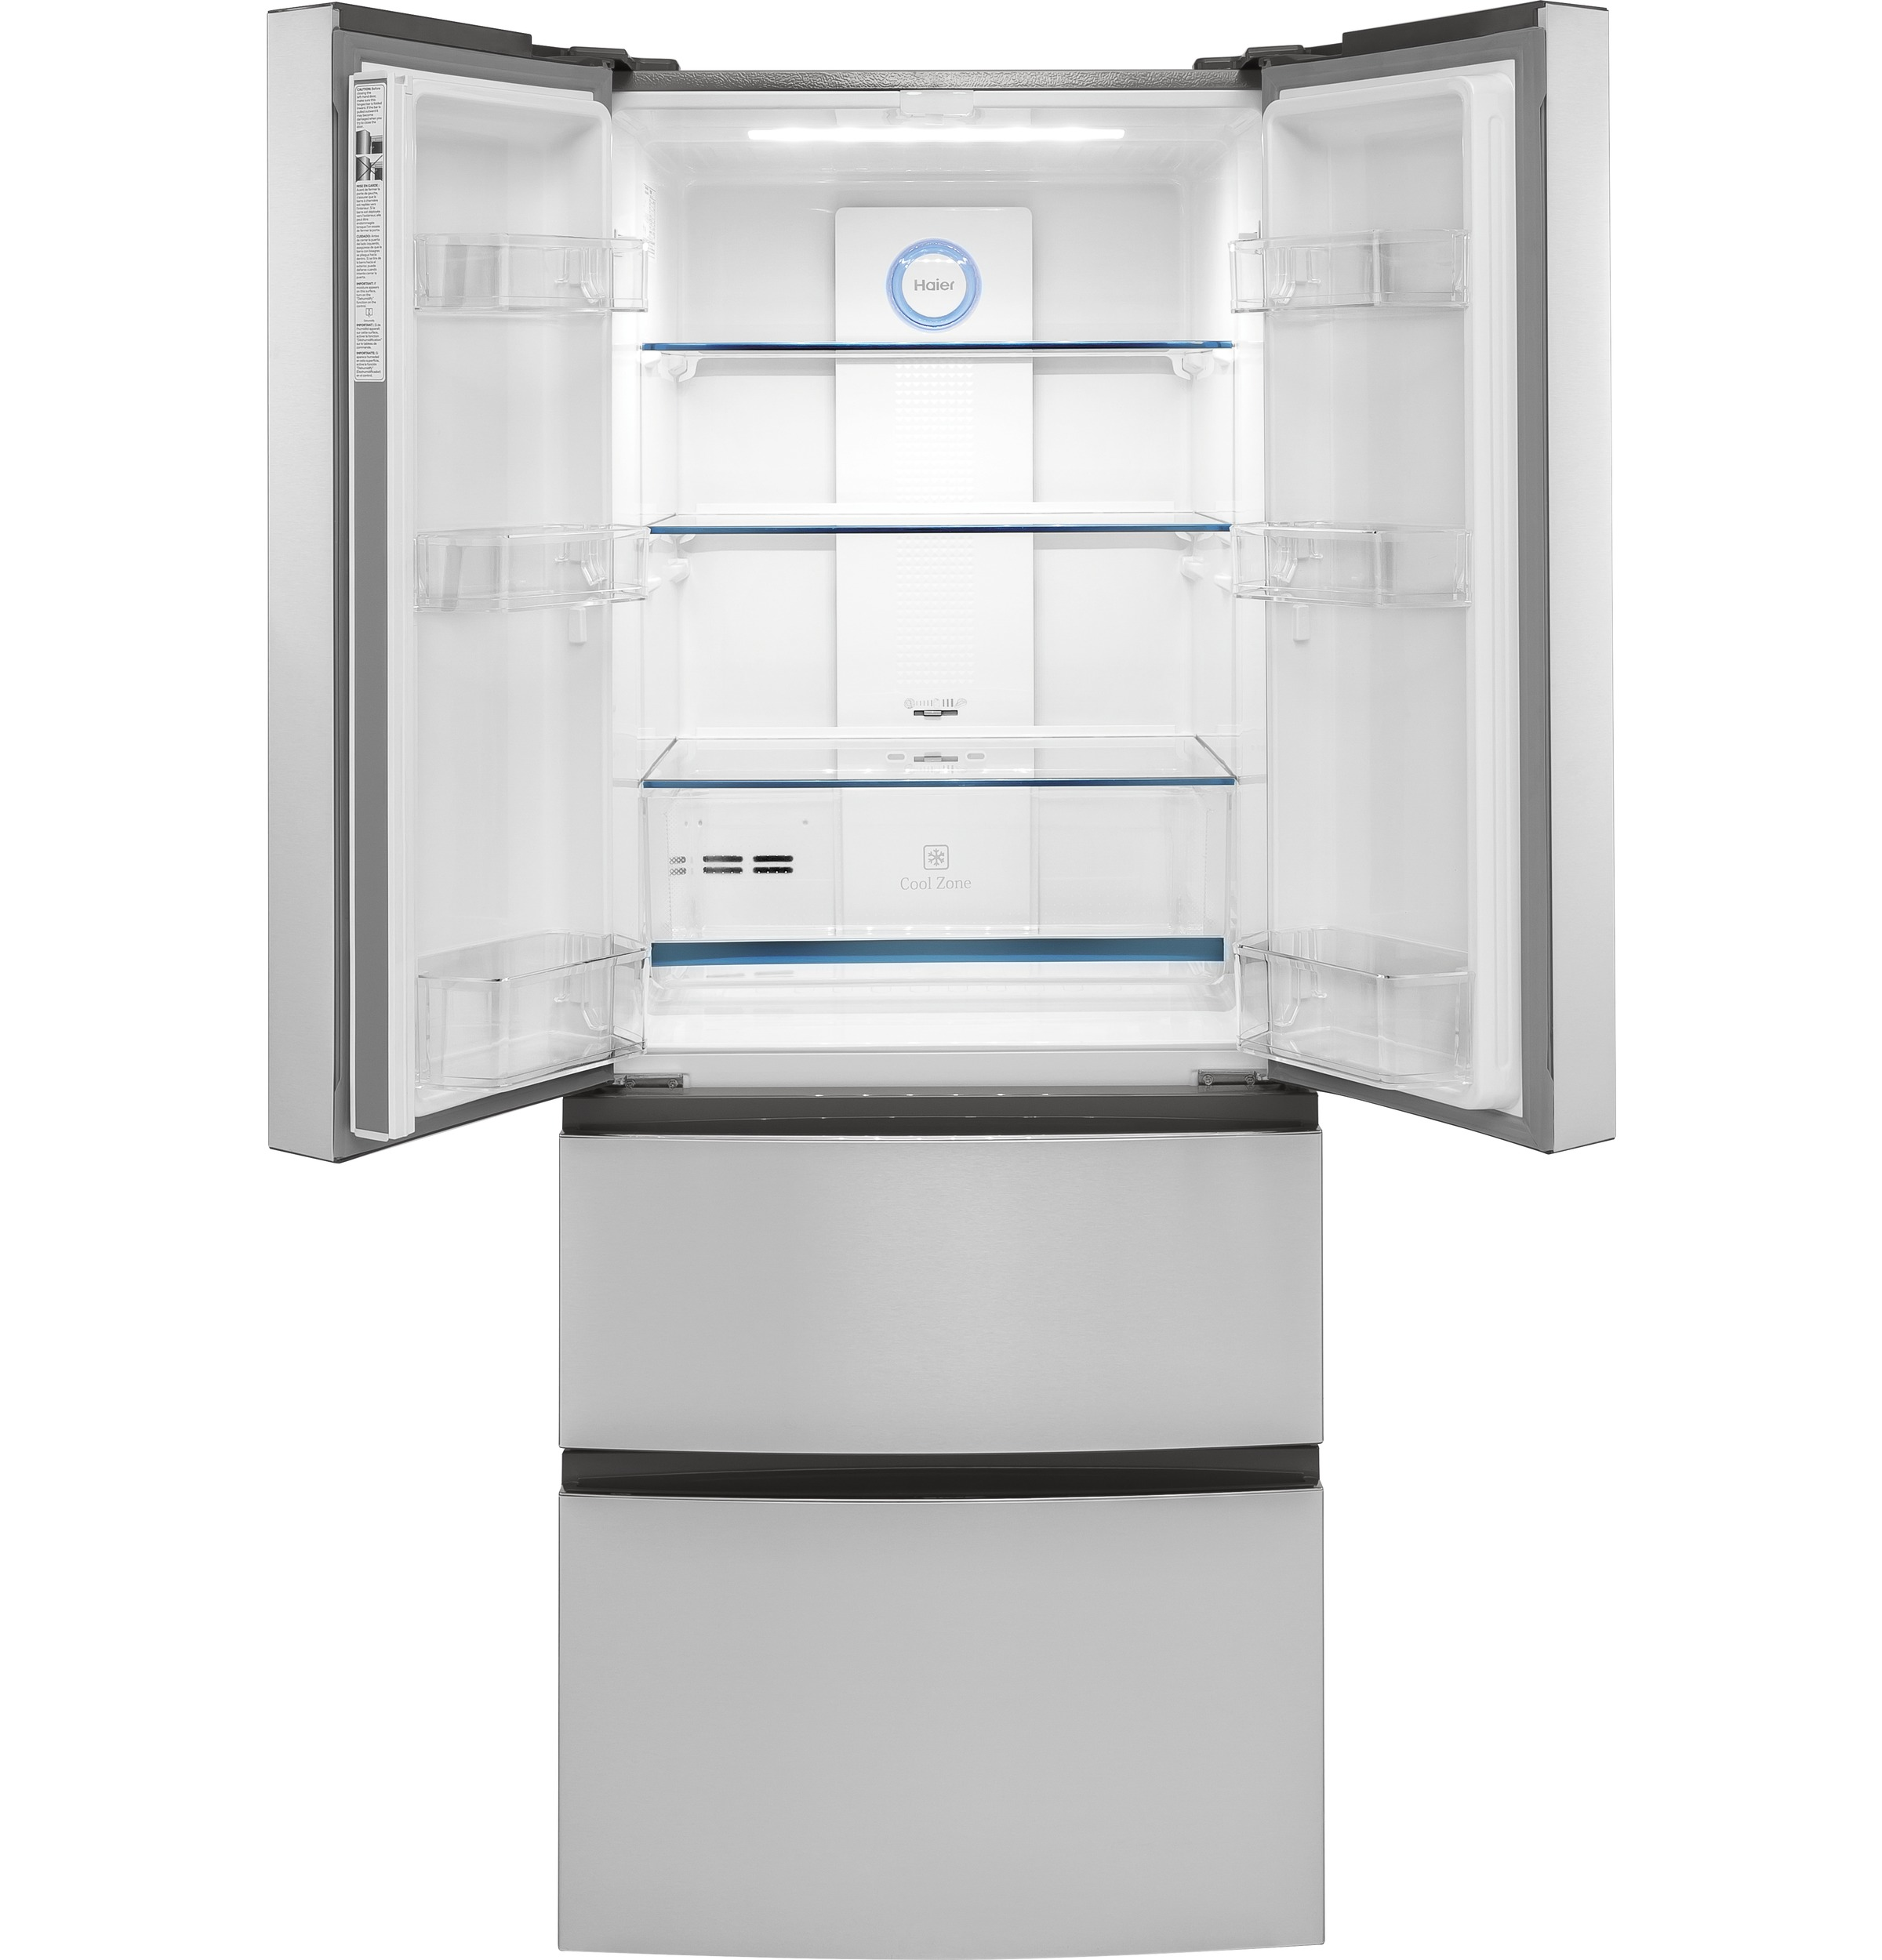 HRF15N3AGS -15 Cu. Ft. French Door Refrigerator